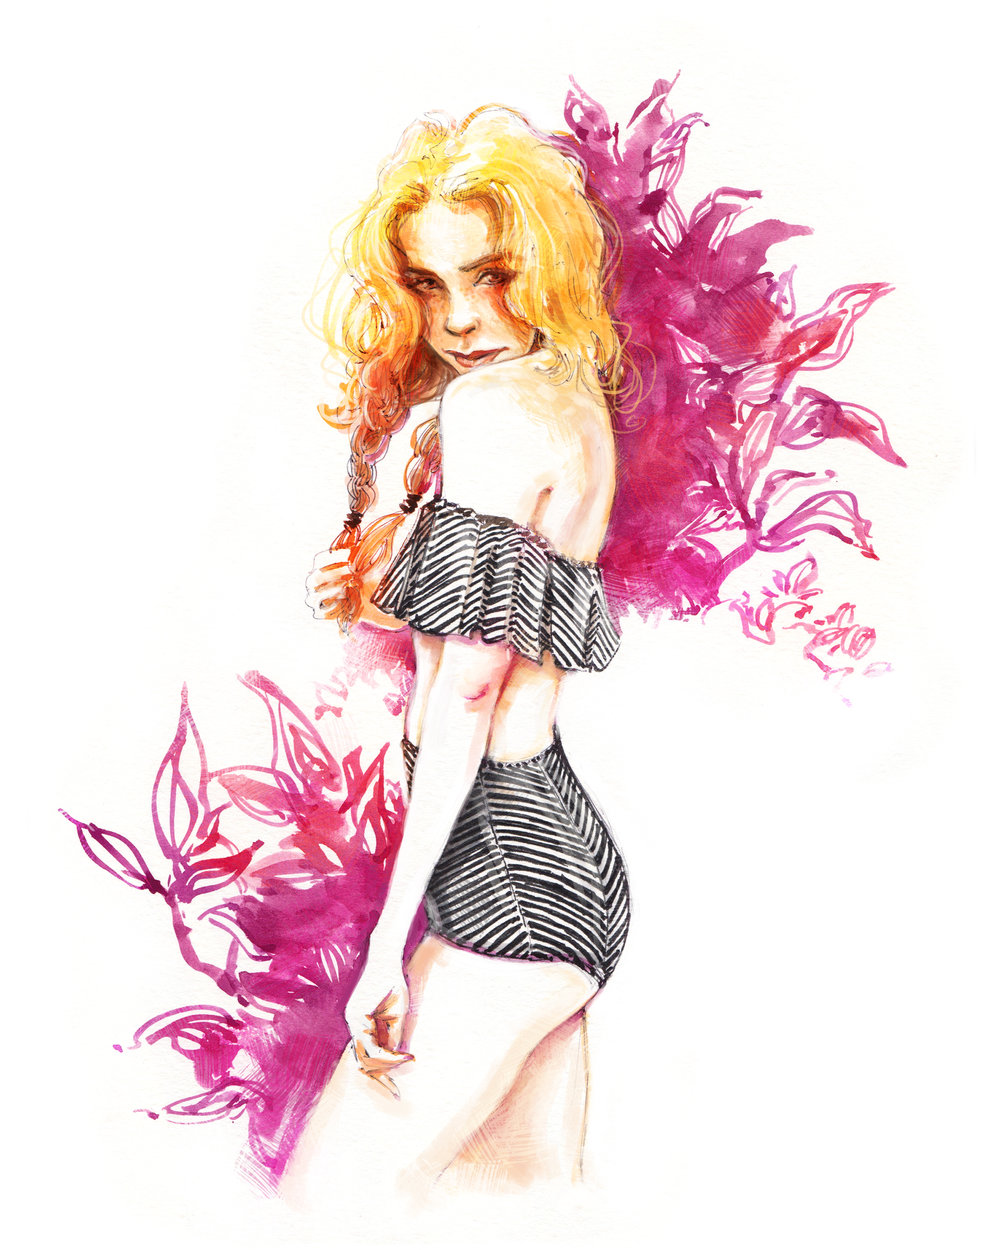 Fashion-Illustration-Instagram-Contest.jpg